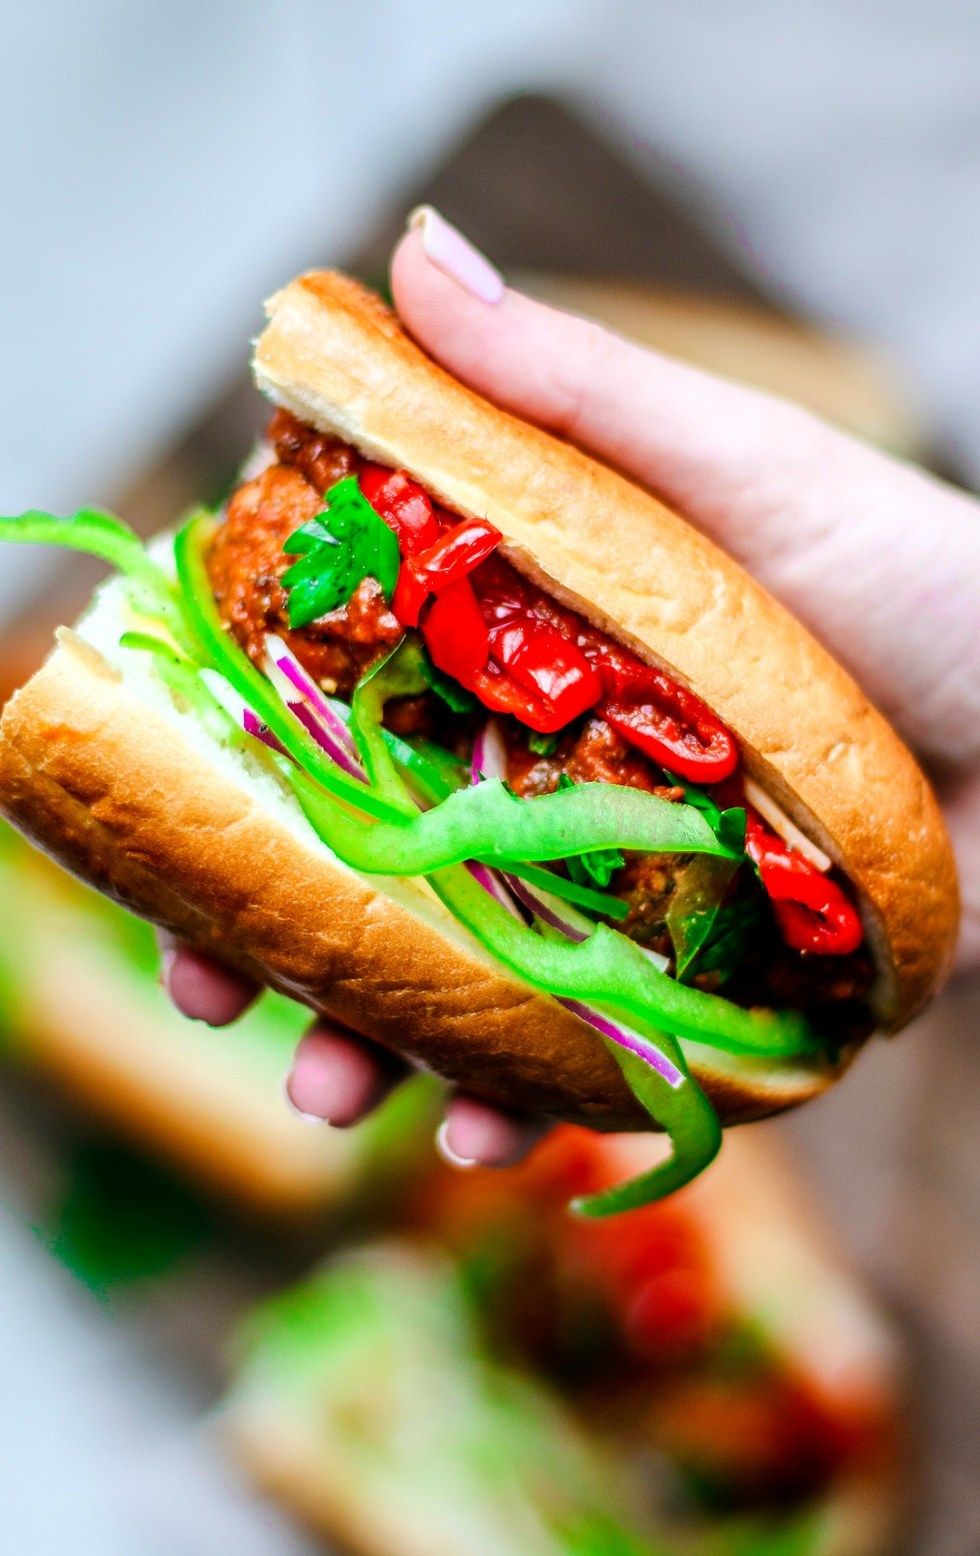 Hand holding up loaded meatball sub.